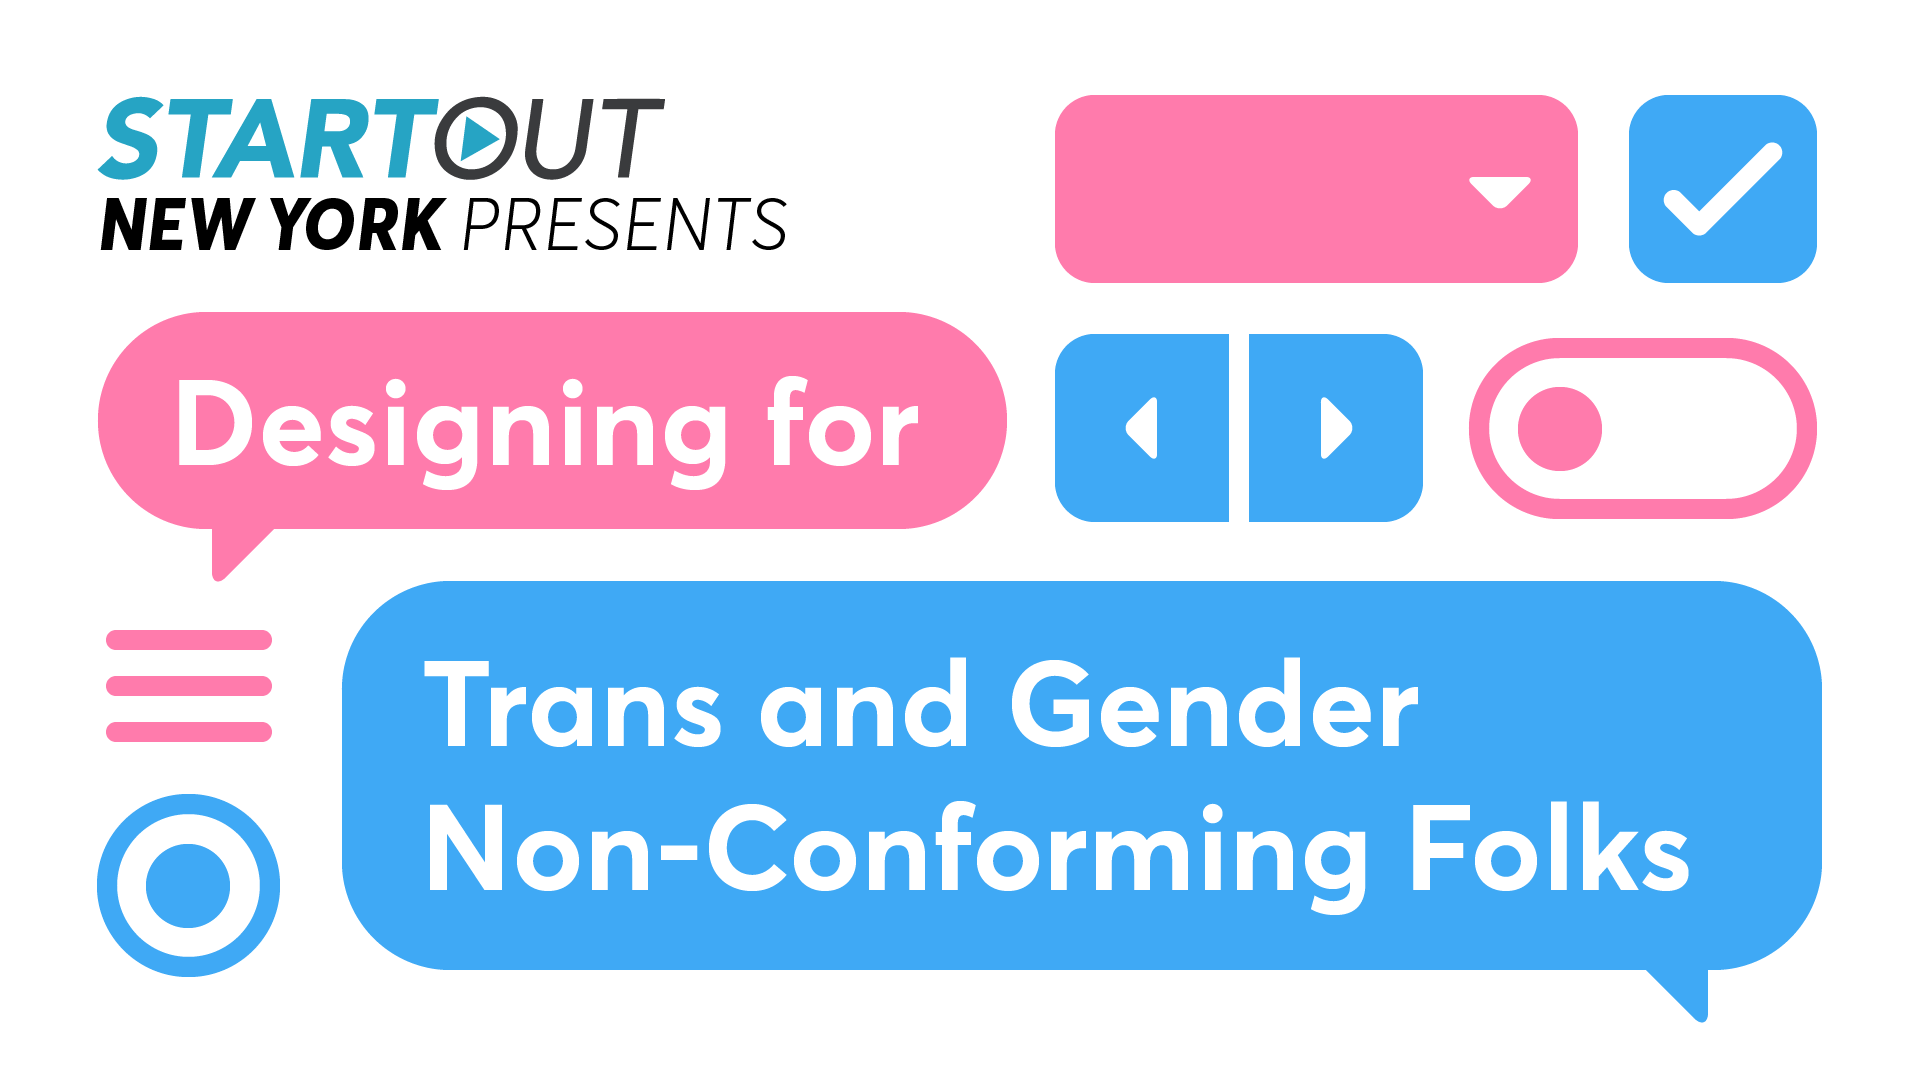 Designing for Trans and Gender Non-Conforming Folks